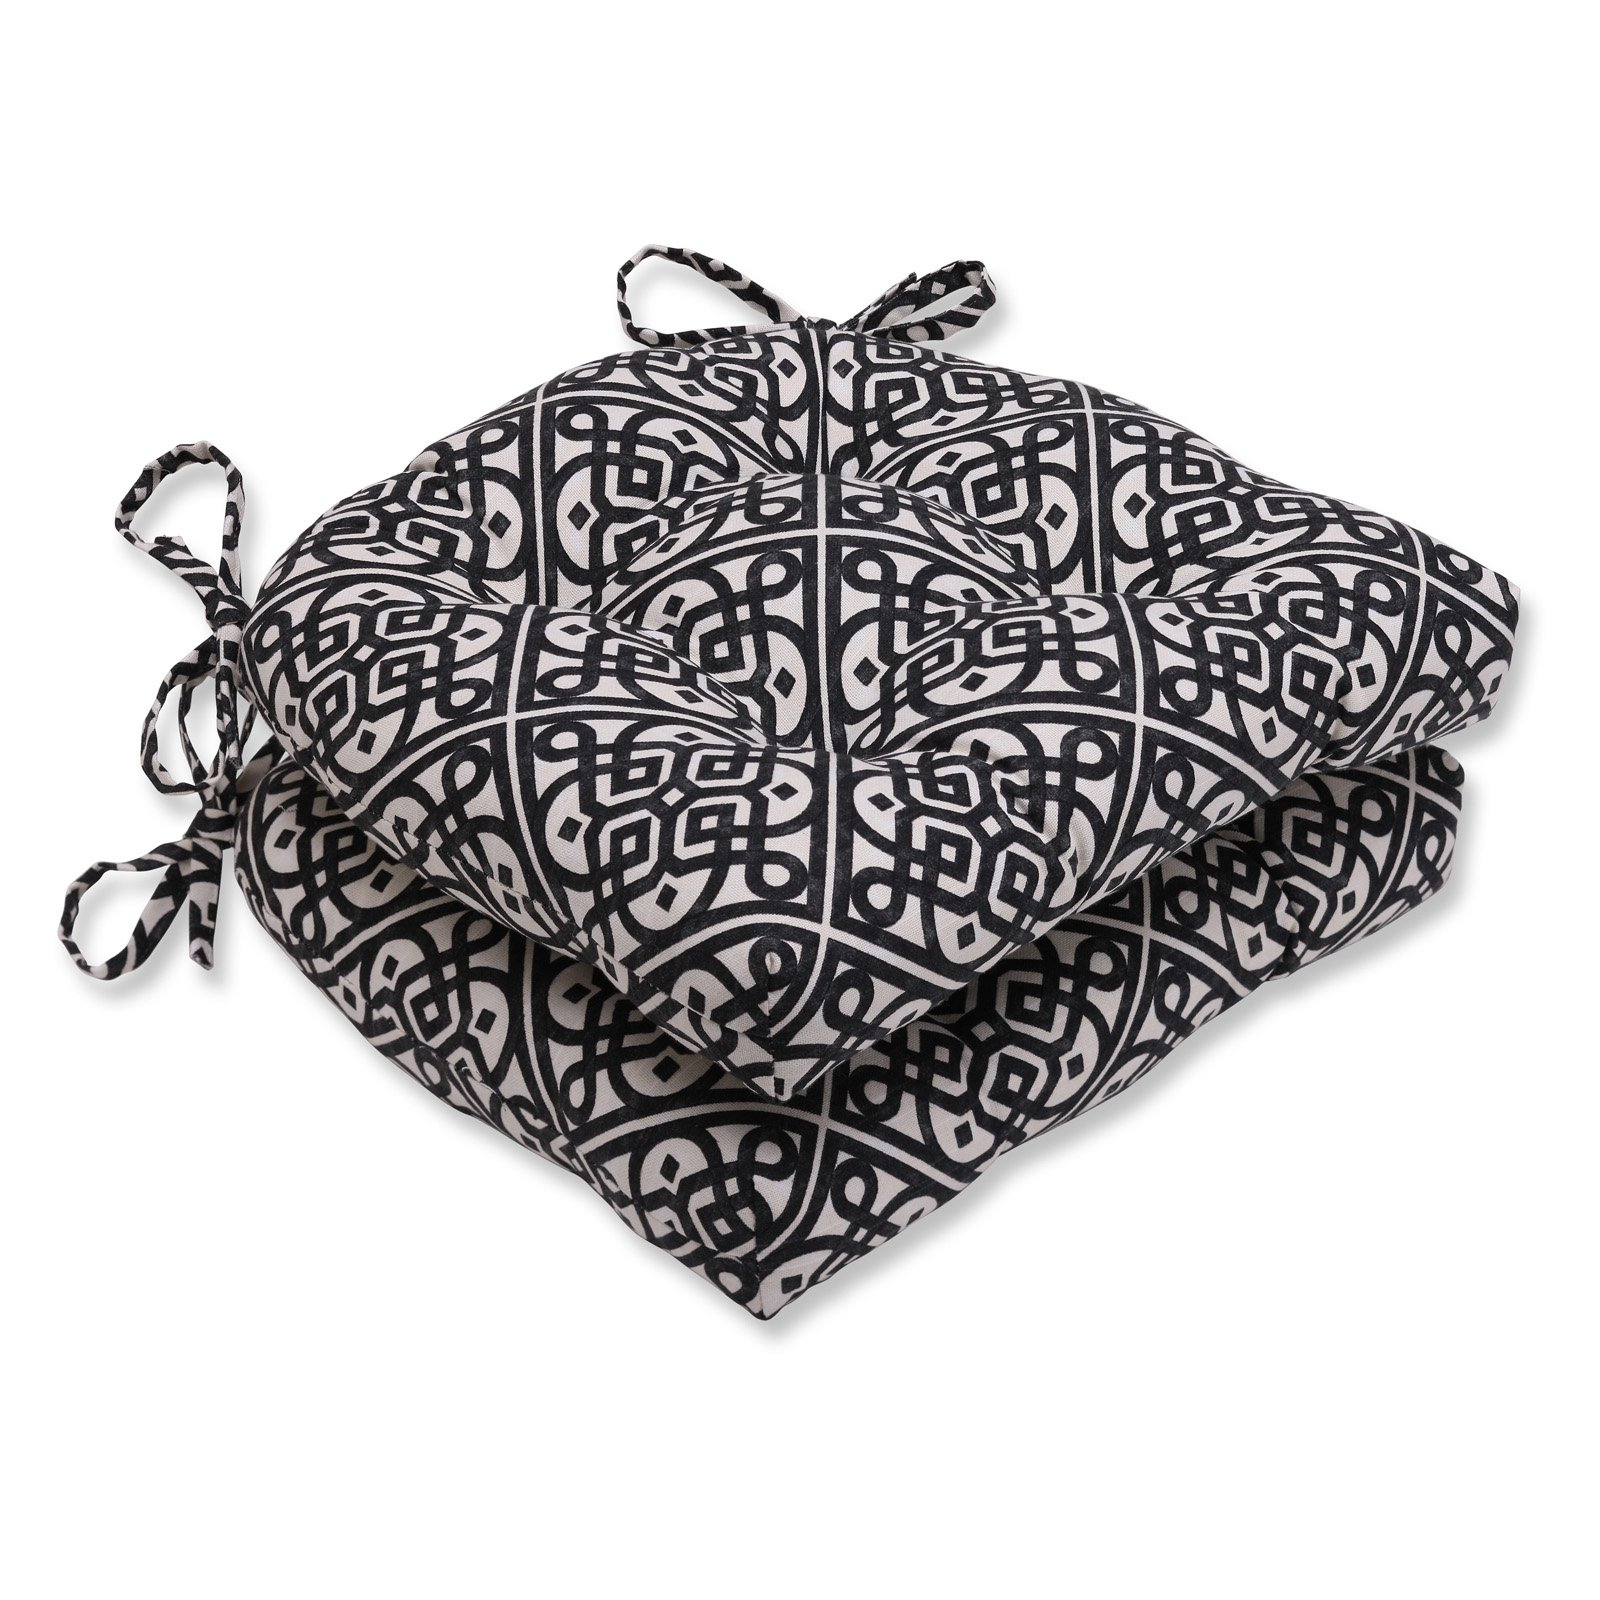 Pillow Perfect Lace It Up Ebony 16 x 15.5 in. Reversible Chair Pad Set of 2 by Overstock